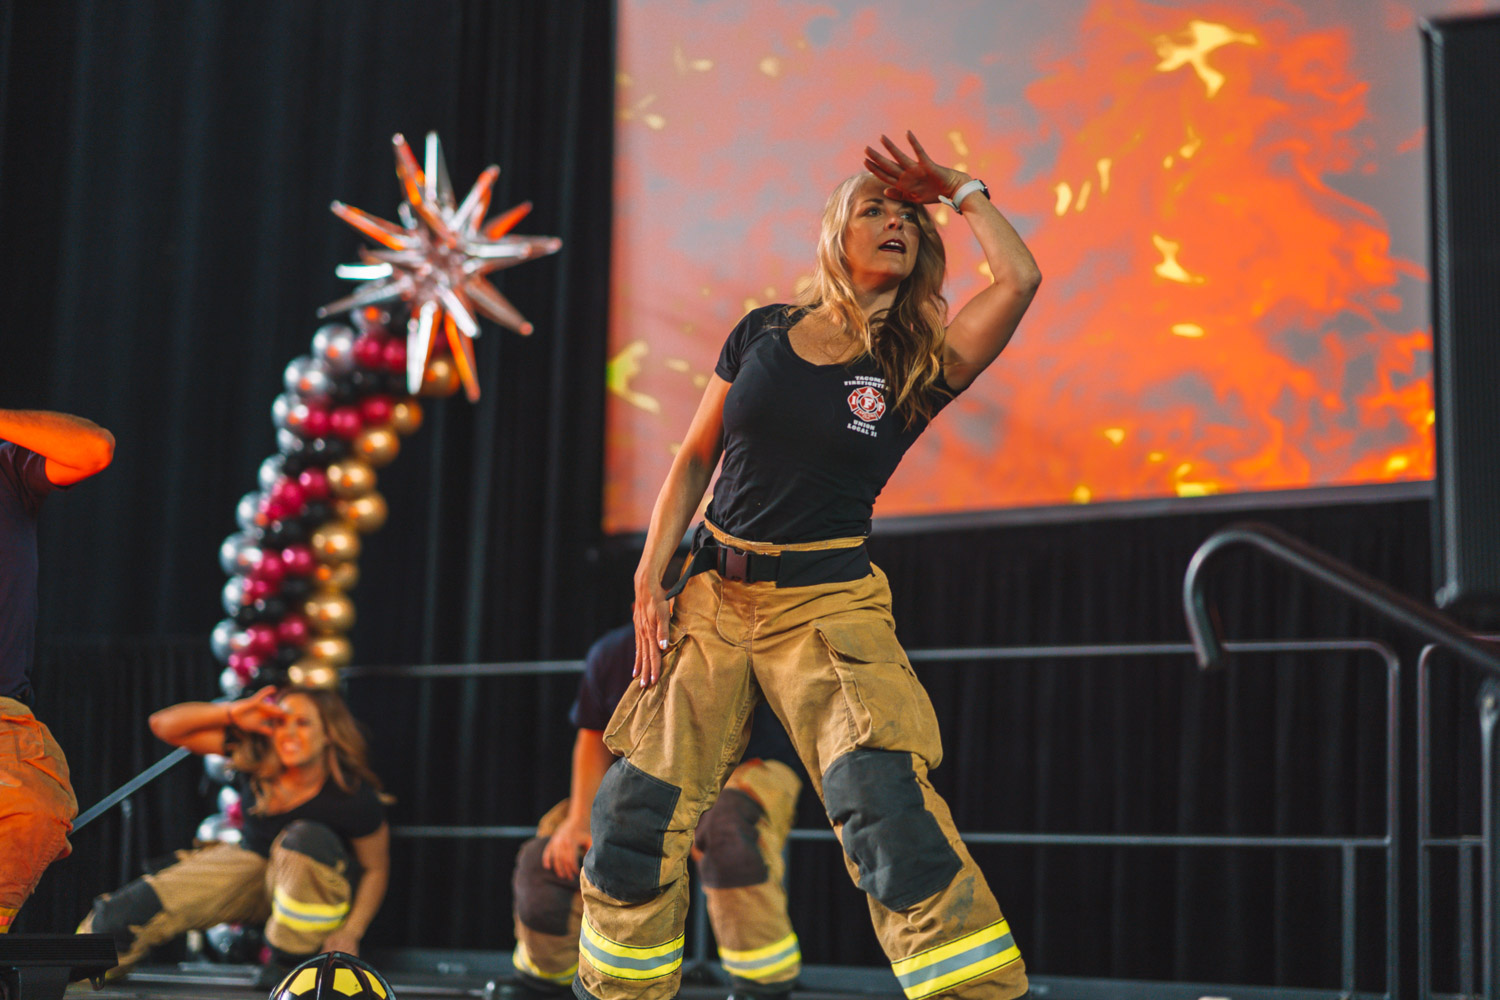 Tacoma Professional Firefighters Local 31 outdid themselves this year at the So NW Women's Show. No, these ladies and gents are not also professional dancers - though their choreographed routine could have had us fooled! These wonderful humans not only came to entertain very excited attendees on both days of the show - but as of last count, raised over $3,000 in donations to YWCA of Pierce County and The FORGE Foundation. Great job guys! (Image: Daniel Macadangdang / Seattle Refined)